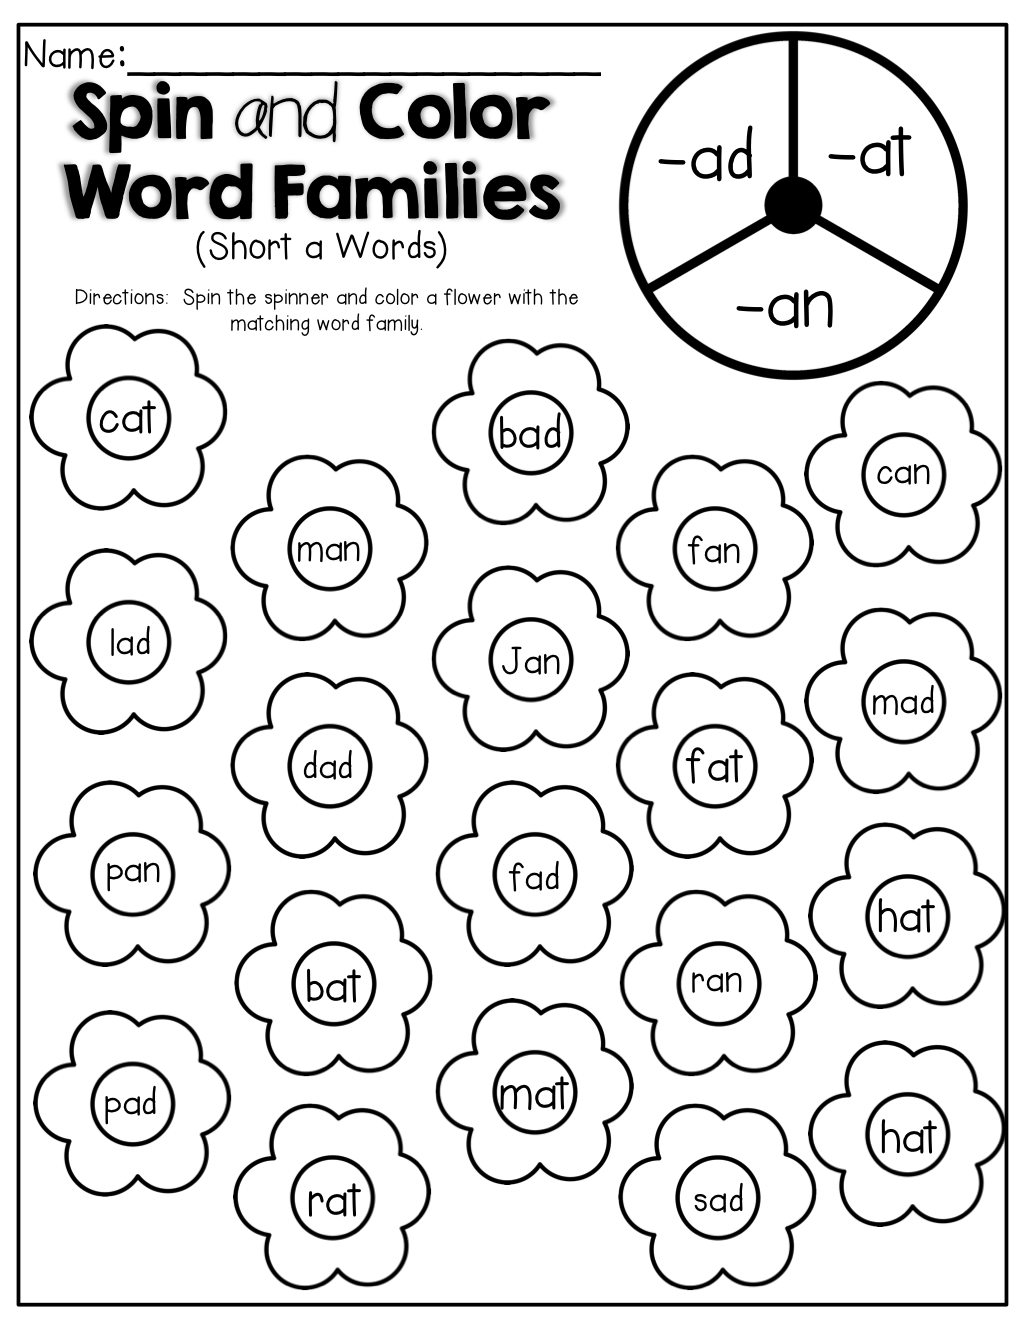 Spin And Color A Word Family Flower Short A Words